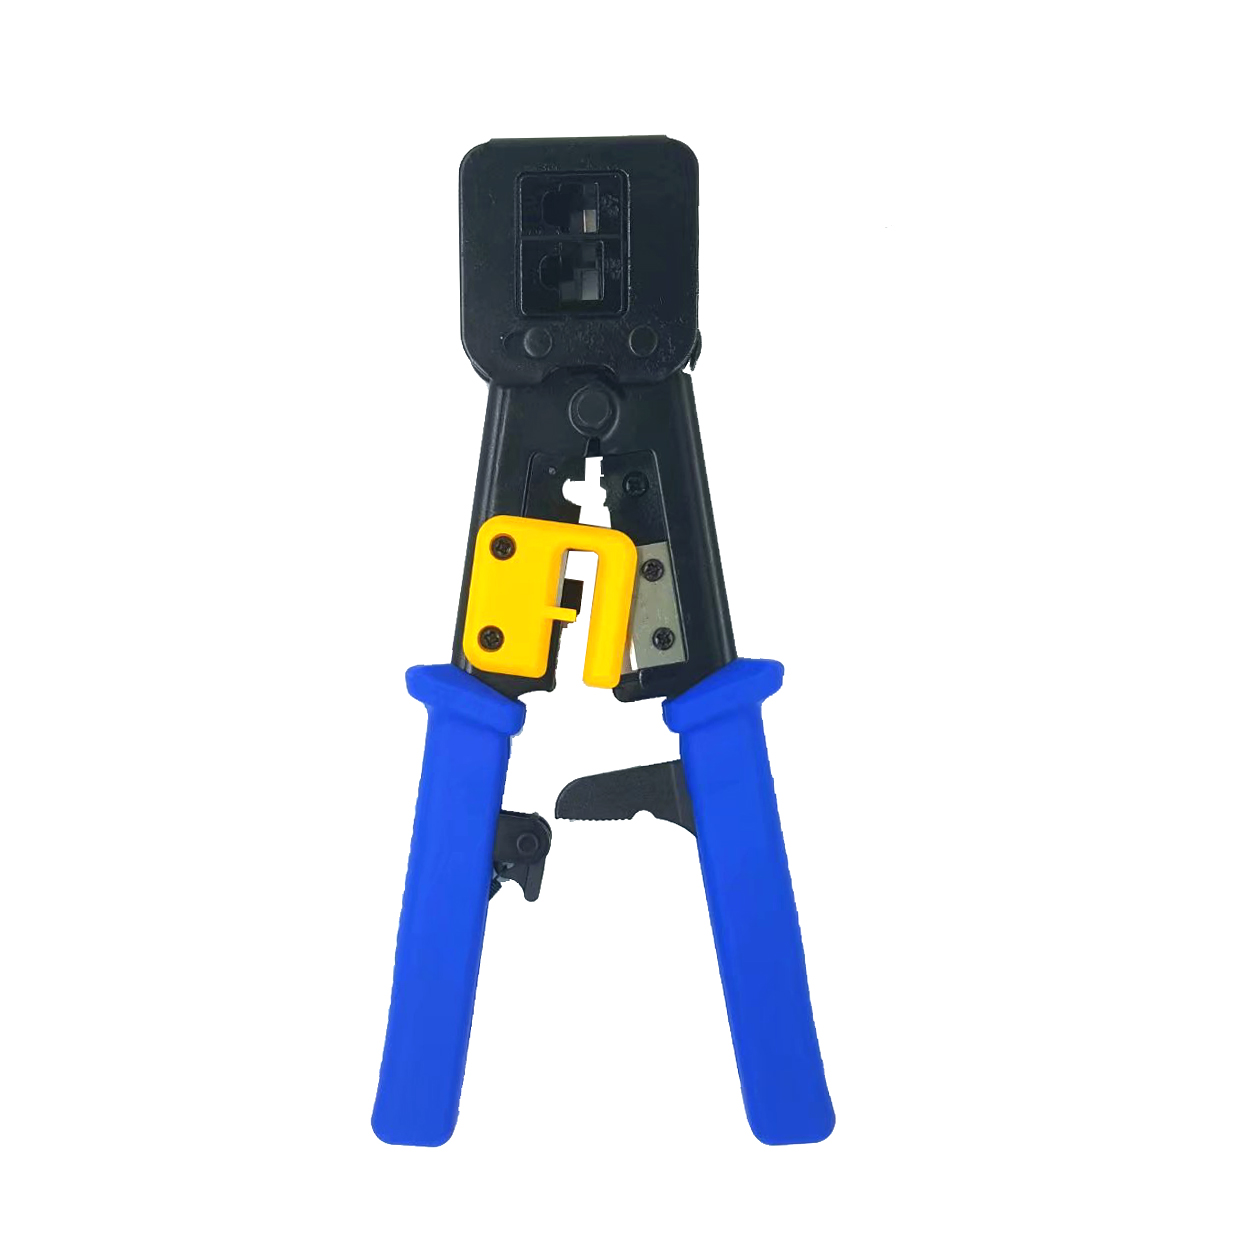 Rj45 Crimper Multi Function Pliers Network Tools Rj12 Cat5 Cat6 8p8c Cable Clip with Protector